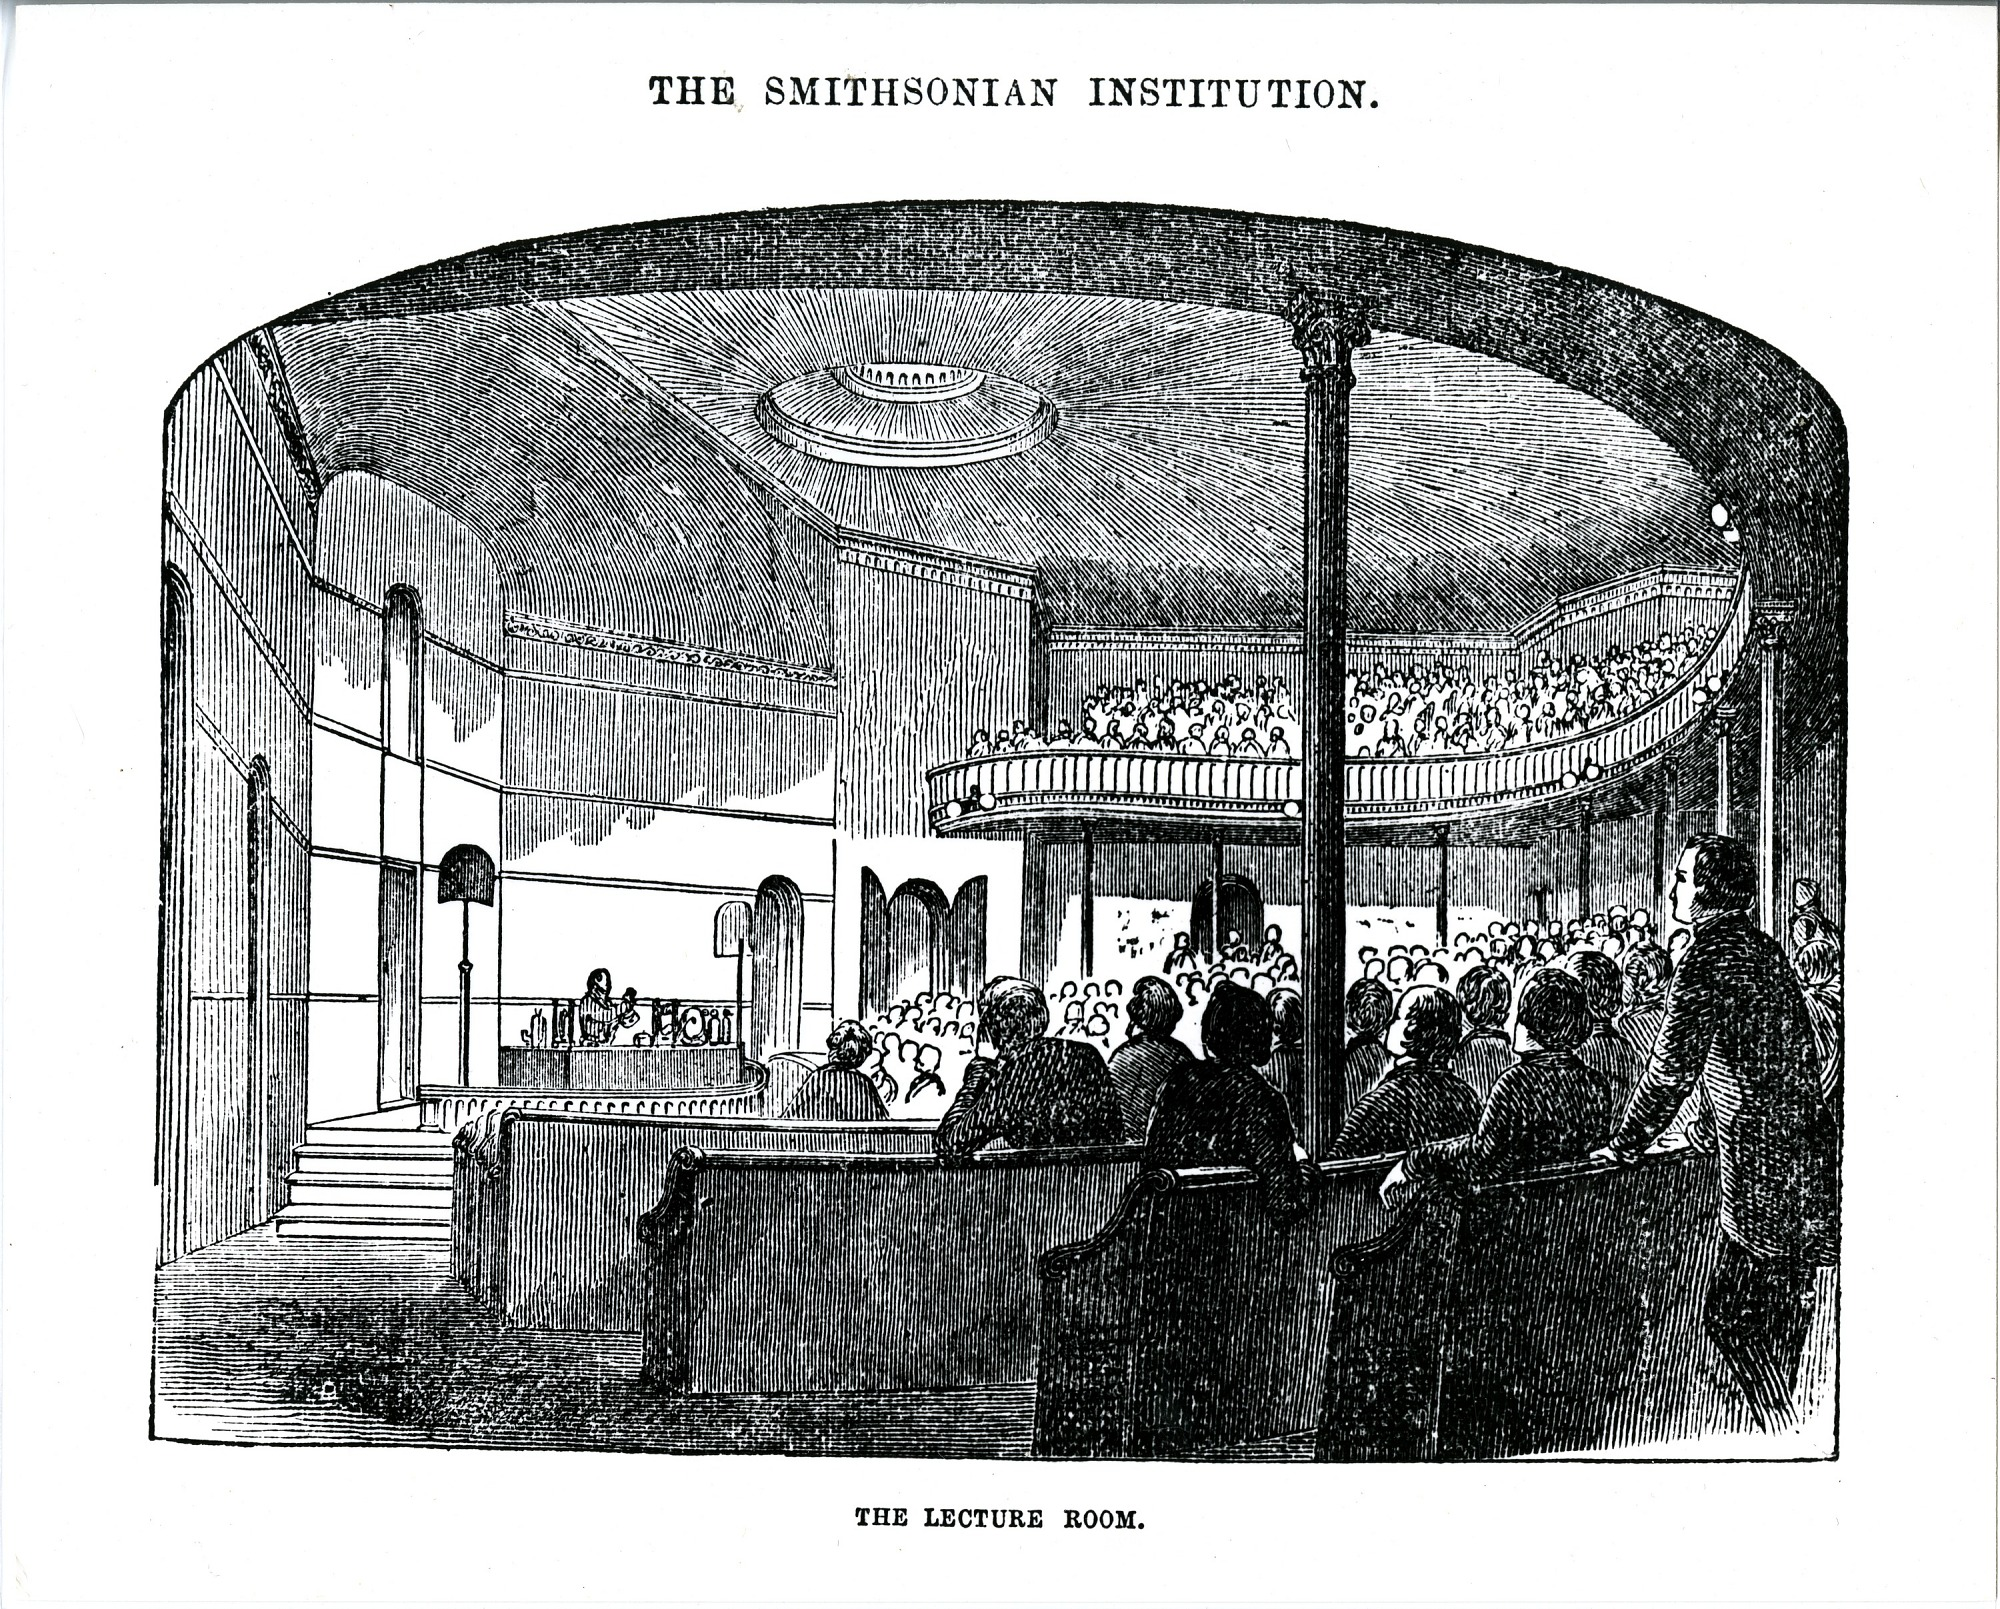 Engraving of Lecture Hall in Smithsonian Institution Building, Smithsonian Institution Archives, negative number SIA2011-2390.